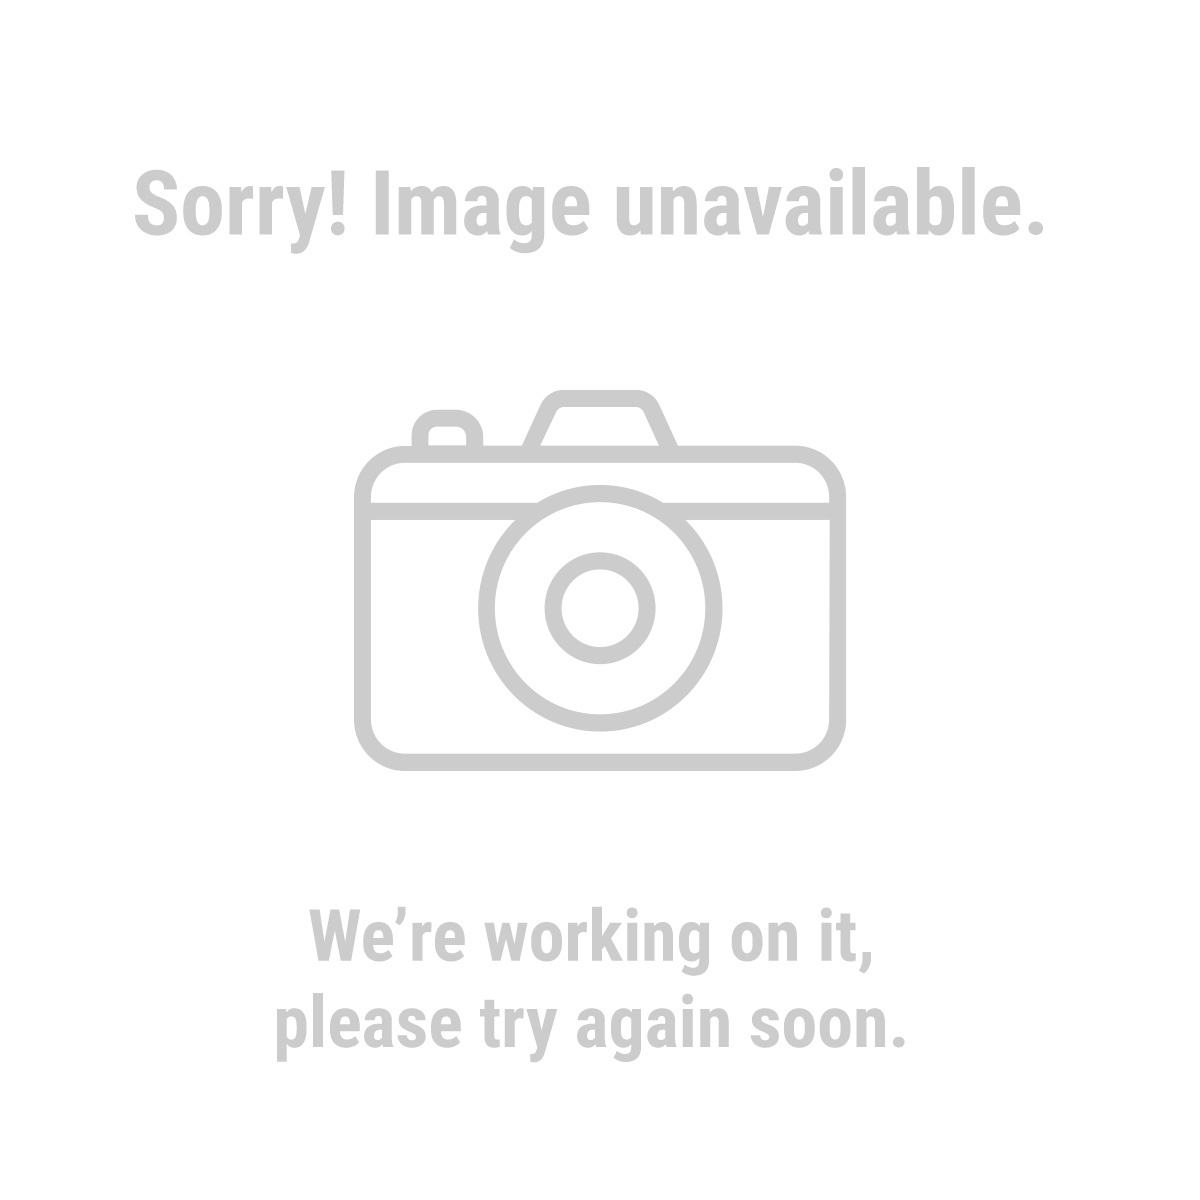 Predator Engines 61563 8 HP (301cc) OHV Horizontal Shaft Gas Engine